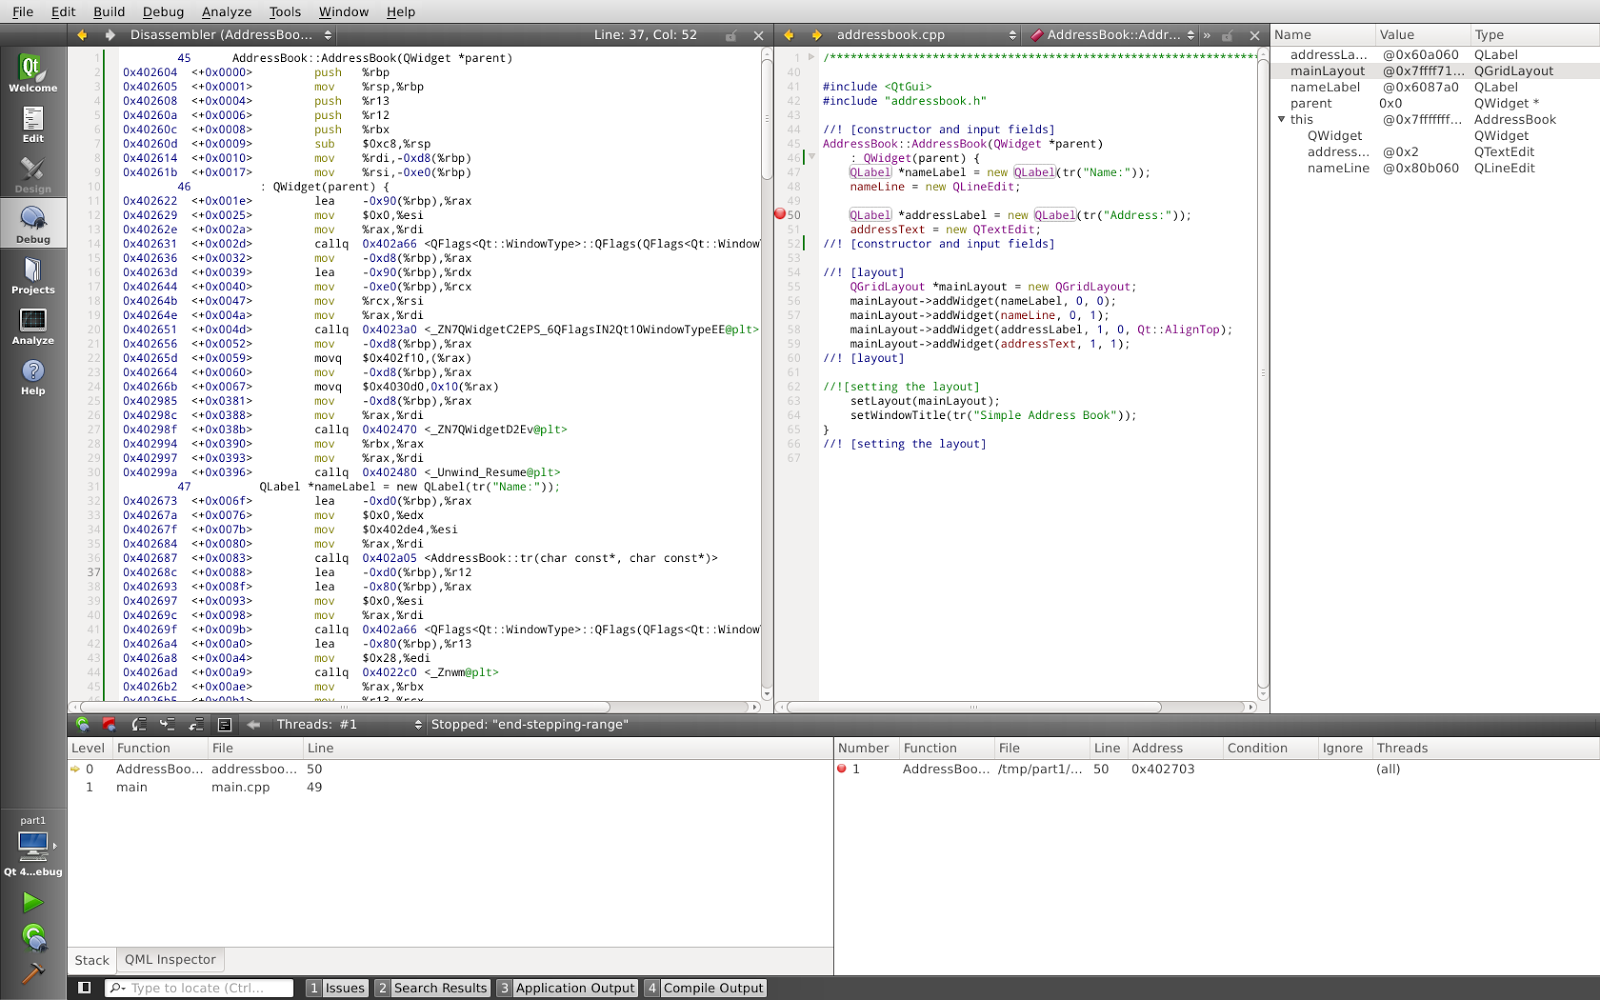 Vikram and Neha: Qt Creator: a superb IDE for Linux